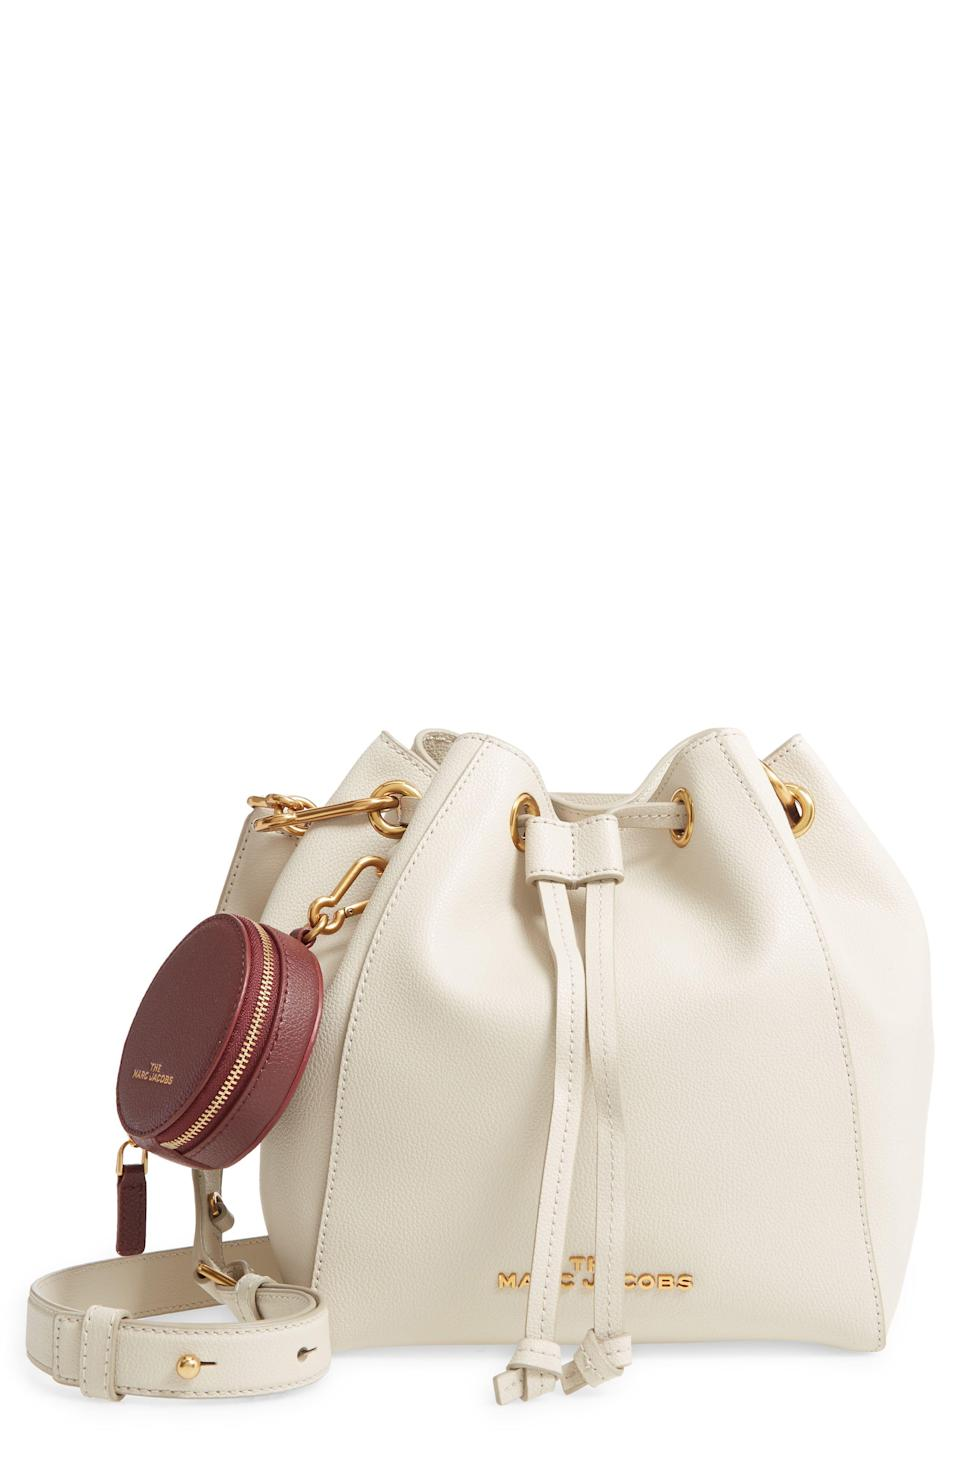 """<p><strong>THE MARC JACOBS</strong></p><p>nordstrom.com</p><p><strong>$297.00</strong></p><p><a href=""""https://go.redirectingat.com?id=74968X1596630&url=https%3A%2F%2Fwww.nordstrom.com%2Fs%2Fthe-marc-jacobs-the-bucket-bag-leather-crossbody-bag%2F5608622&sref=https%3A%2F%2Fwww.elle.com%2Ffashion%2Fshopping%2Fg34741930%2Fnordstrom-12-days-of-cyber-savings-sale%2F"""" rel=""""nofollow noopener"""" target=""""_blank"""" data-ylk=""""slk:Shop Now"""" class=""""link rapid-noclick-resp"""">Shop Now</a></p>"""